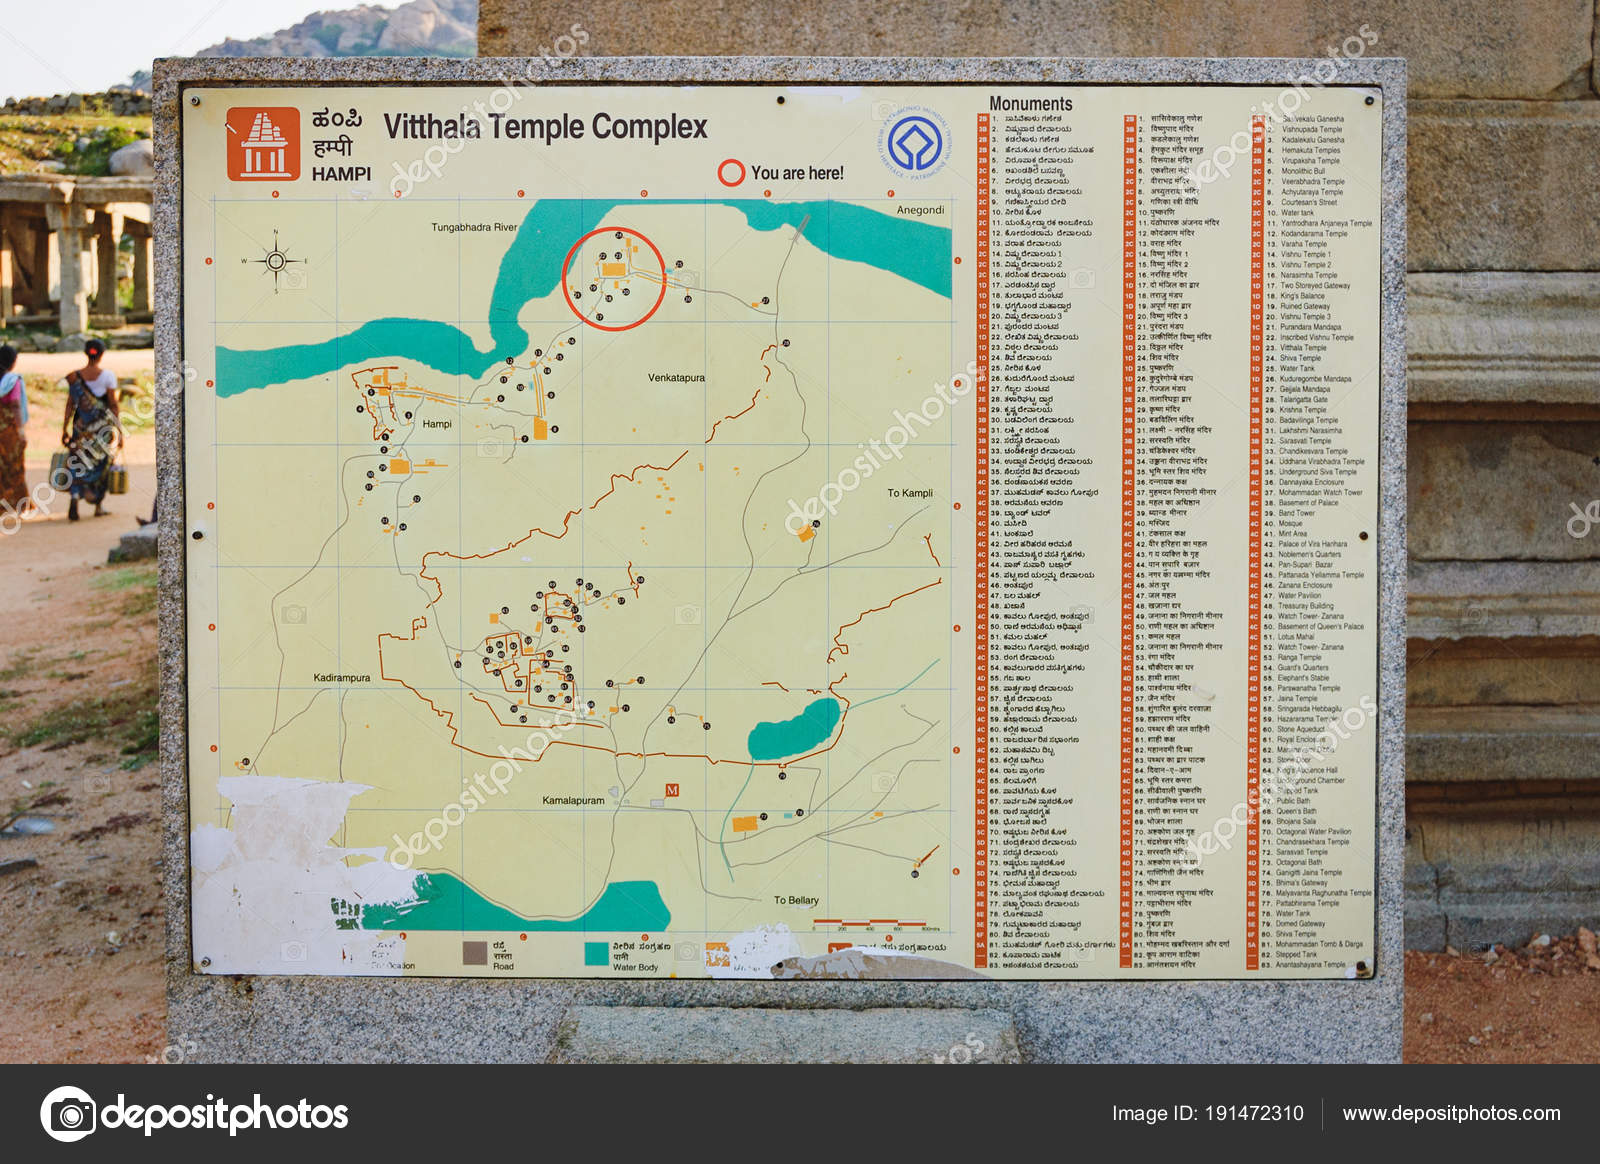 Hampi India Map.Old Map Of Vitthala Temple In Hampi India Stock Editorial Photo